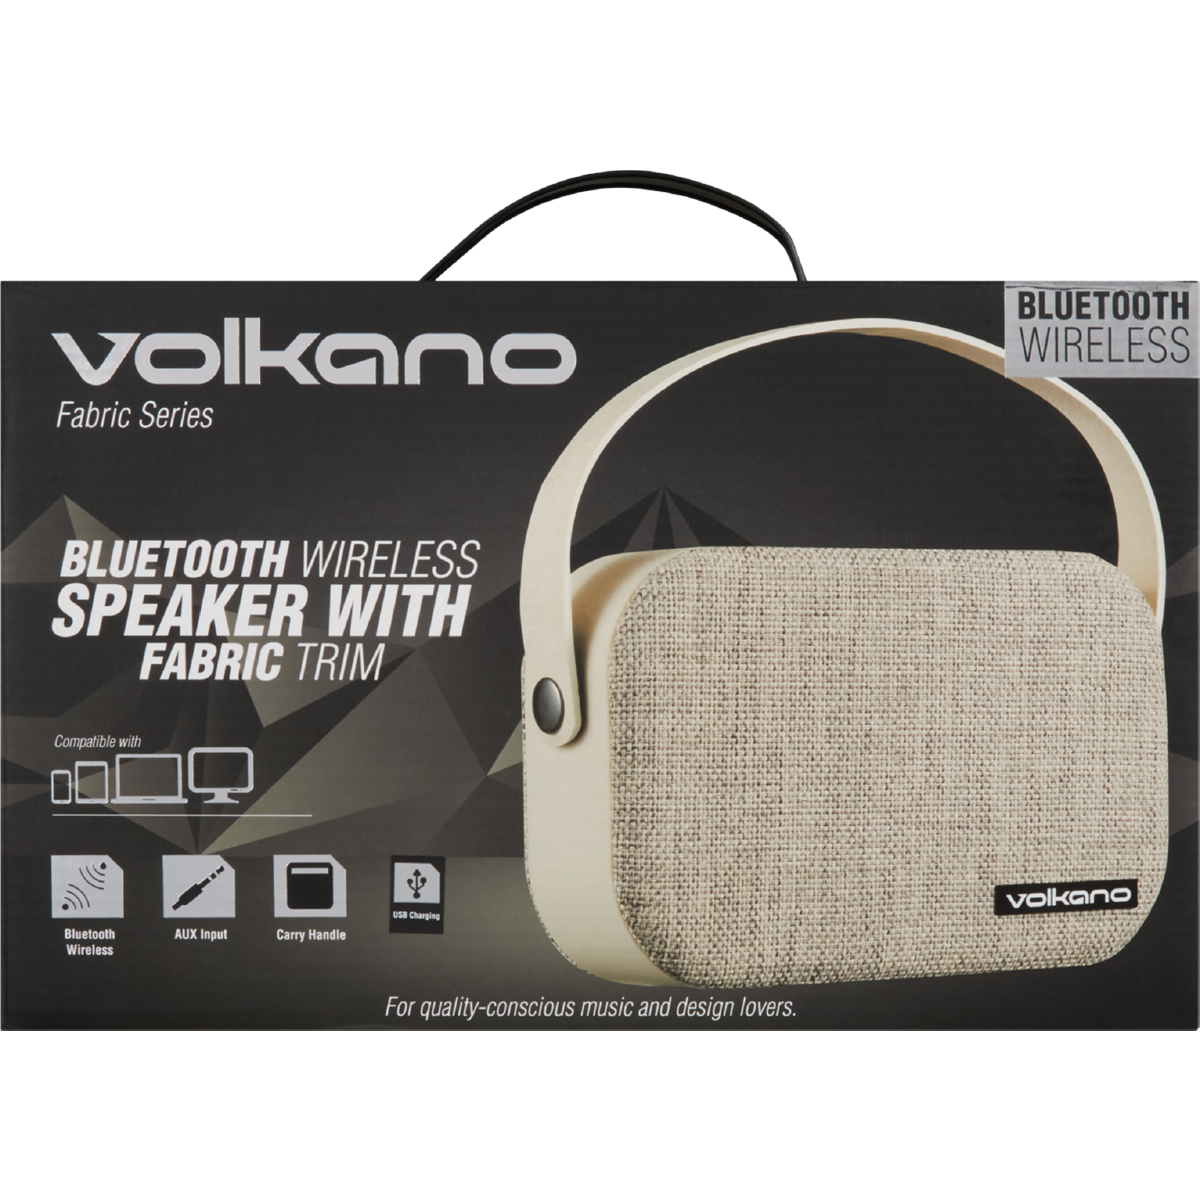 VOLKANO FABRIC BLUETOOTH SPEAKER LIGHT GREY